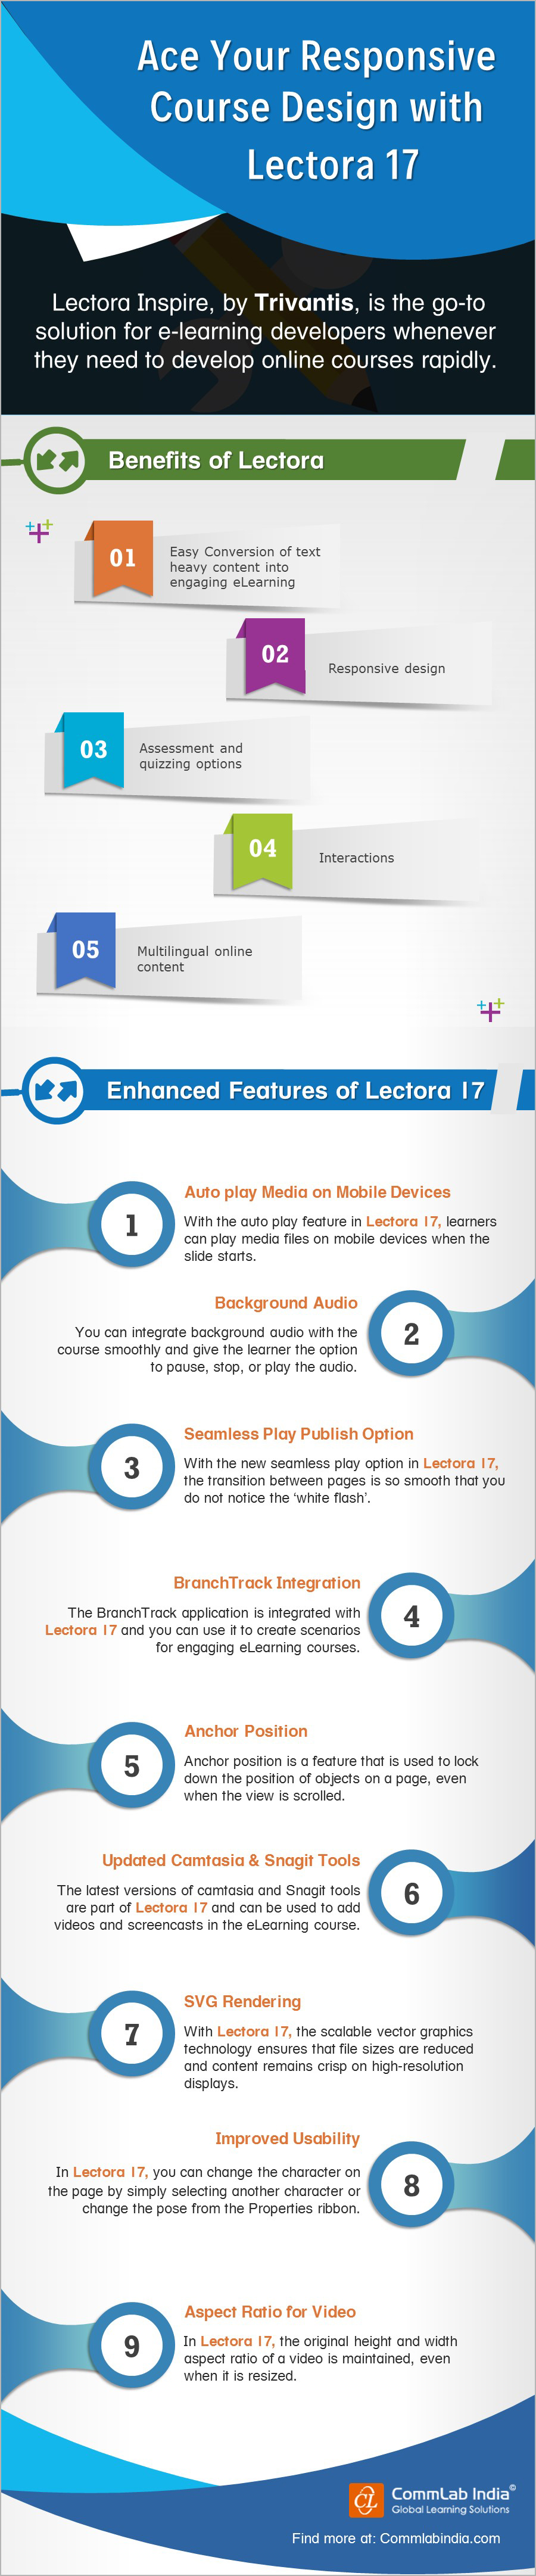 Ace Your Responsive Course Design with Lectora 17[Infographic]